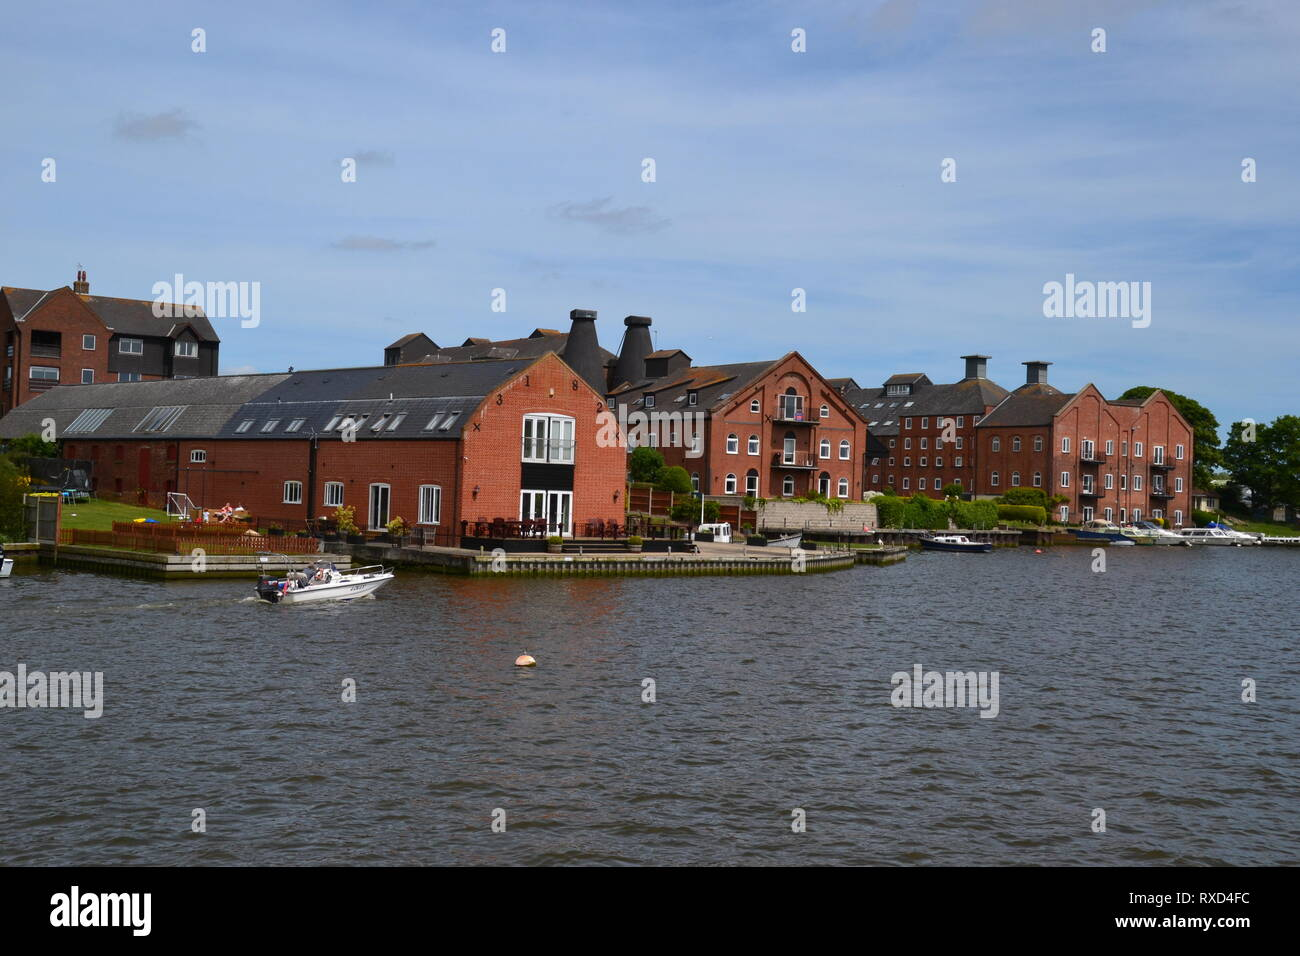 The Old Maltings on Oulton Broad, Suffolk, UK - Stock Image